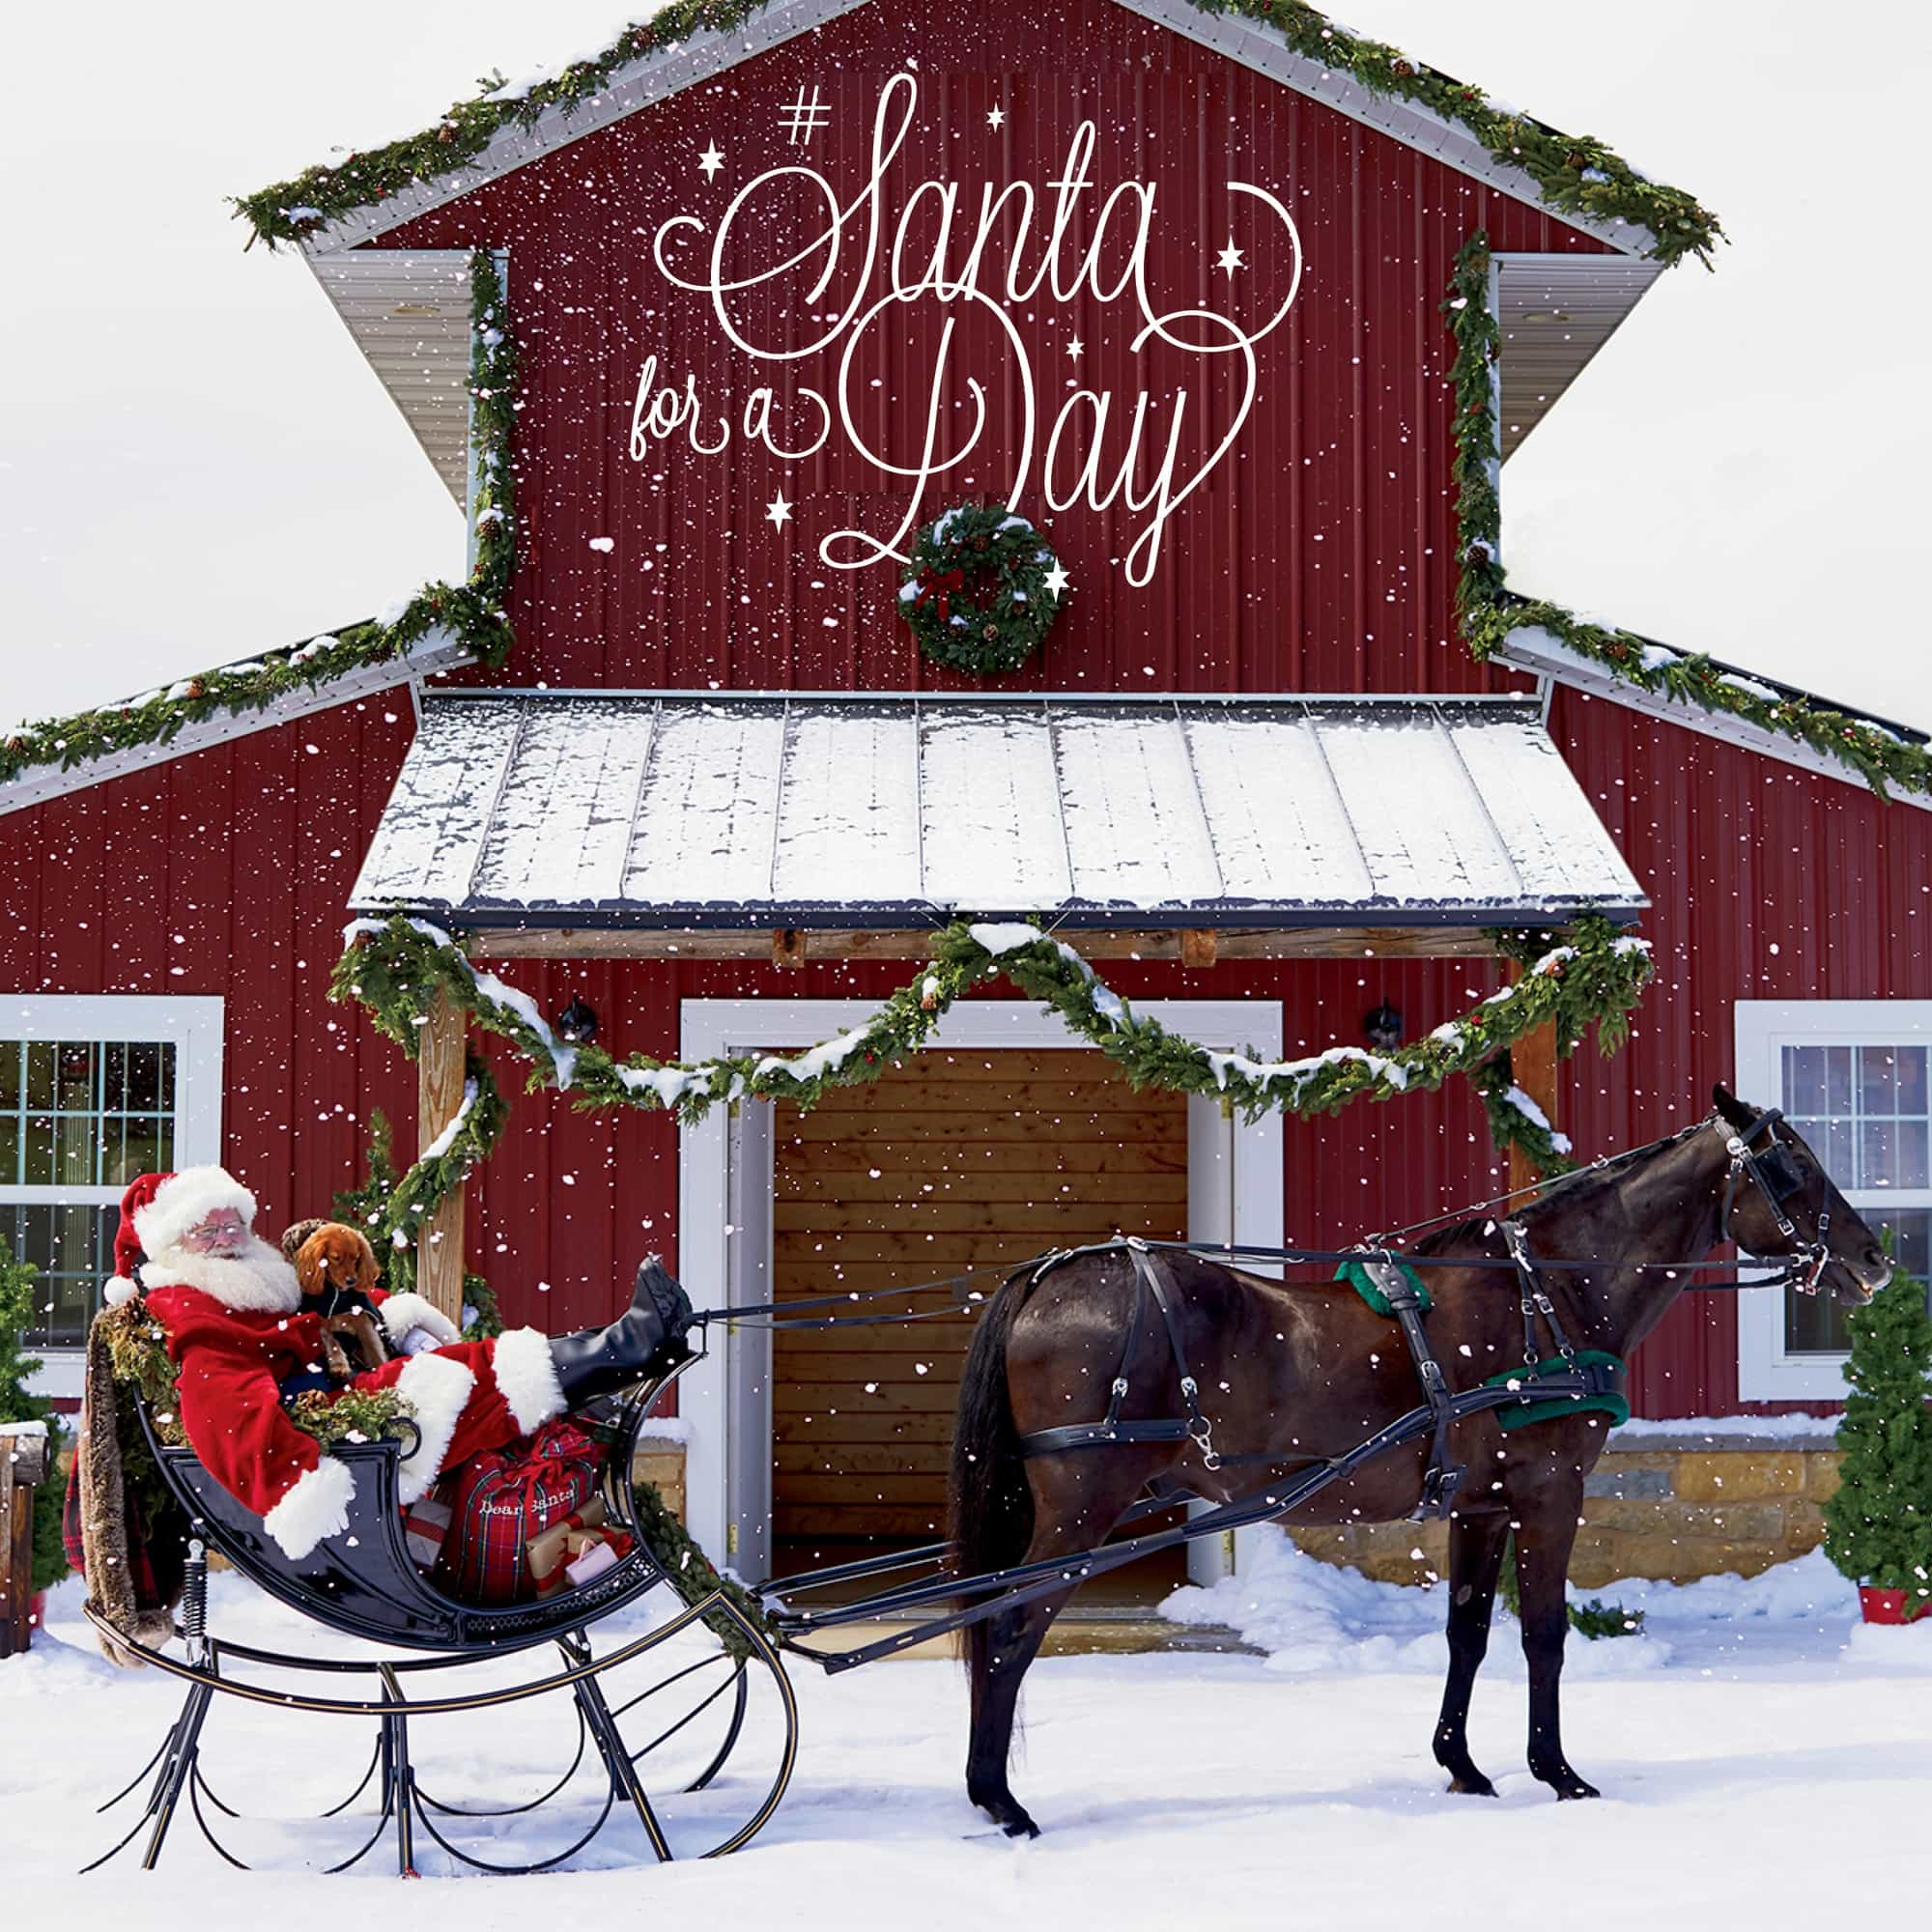 Want to be Santa for a Day? Enter the Lands' End sweepstakes!